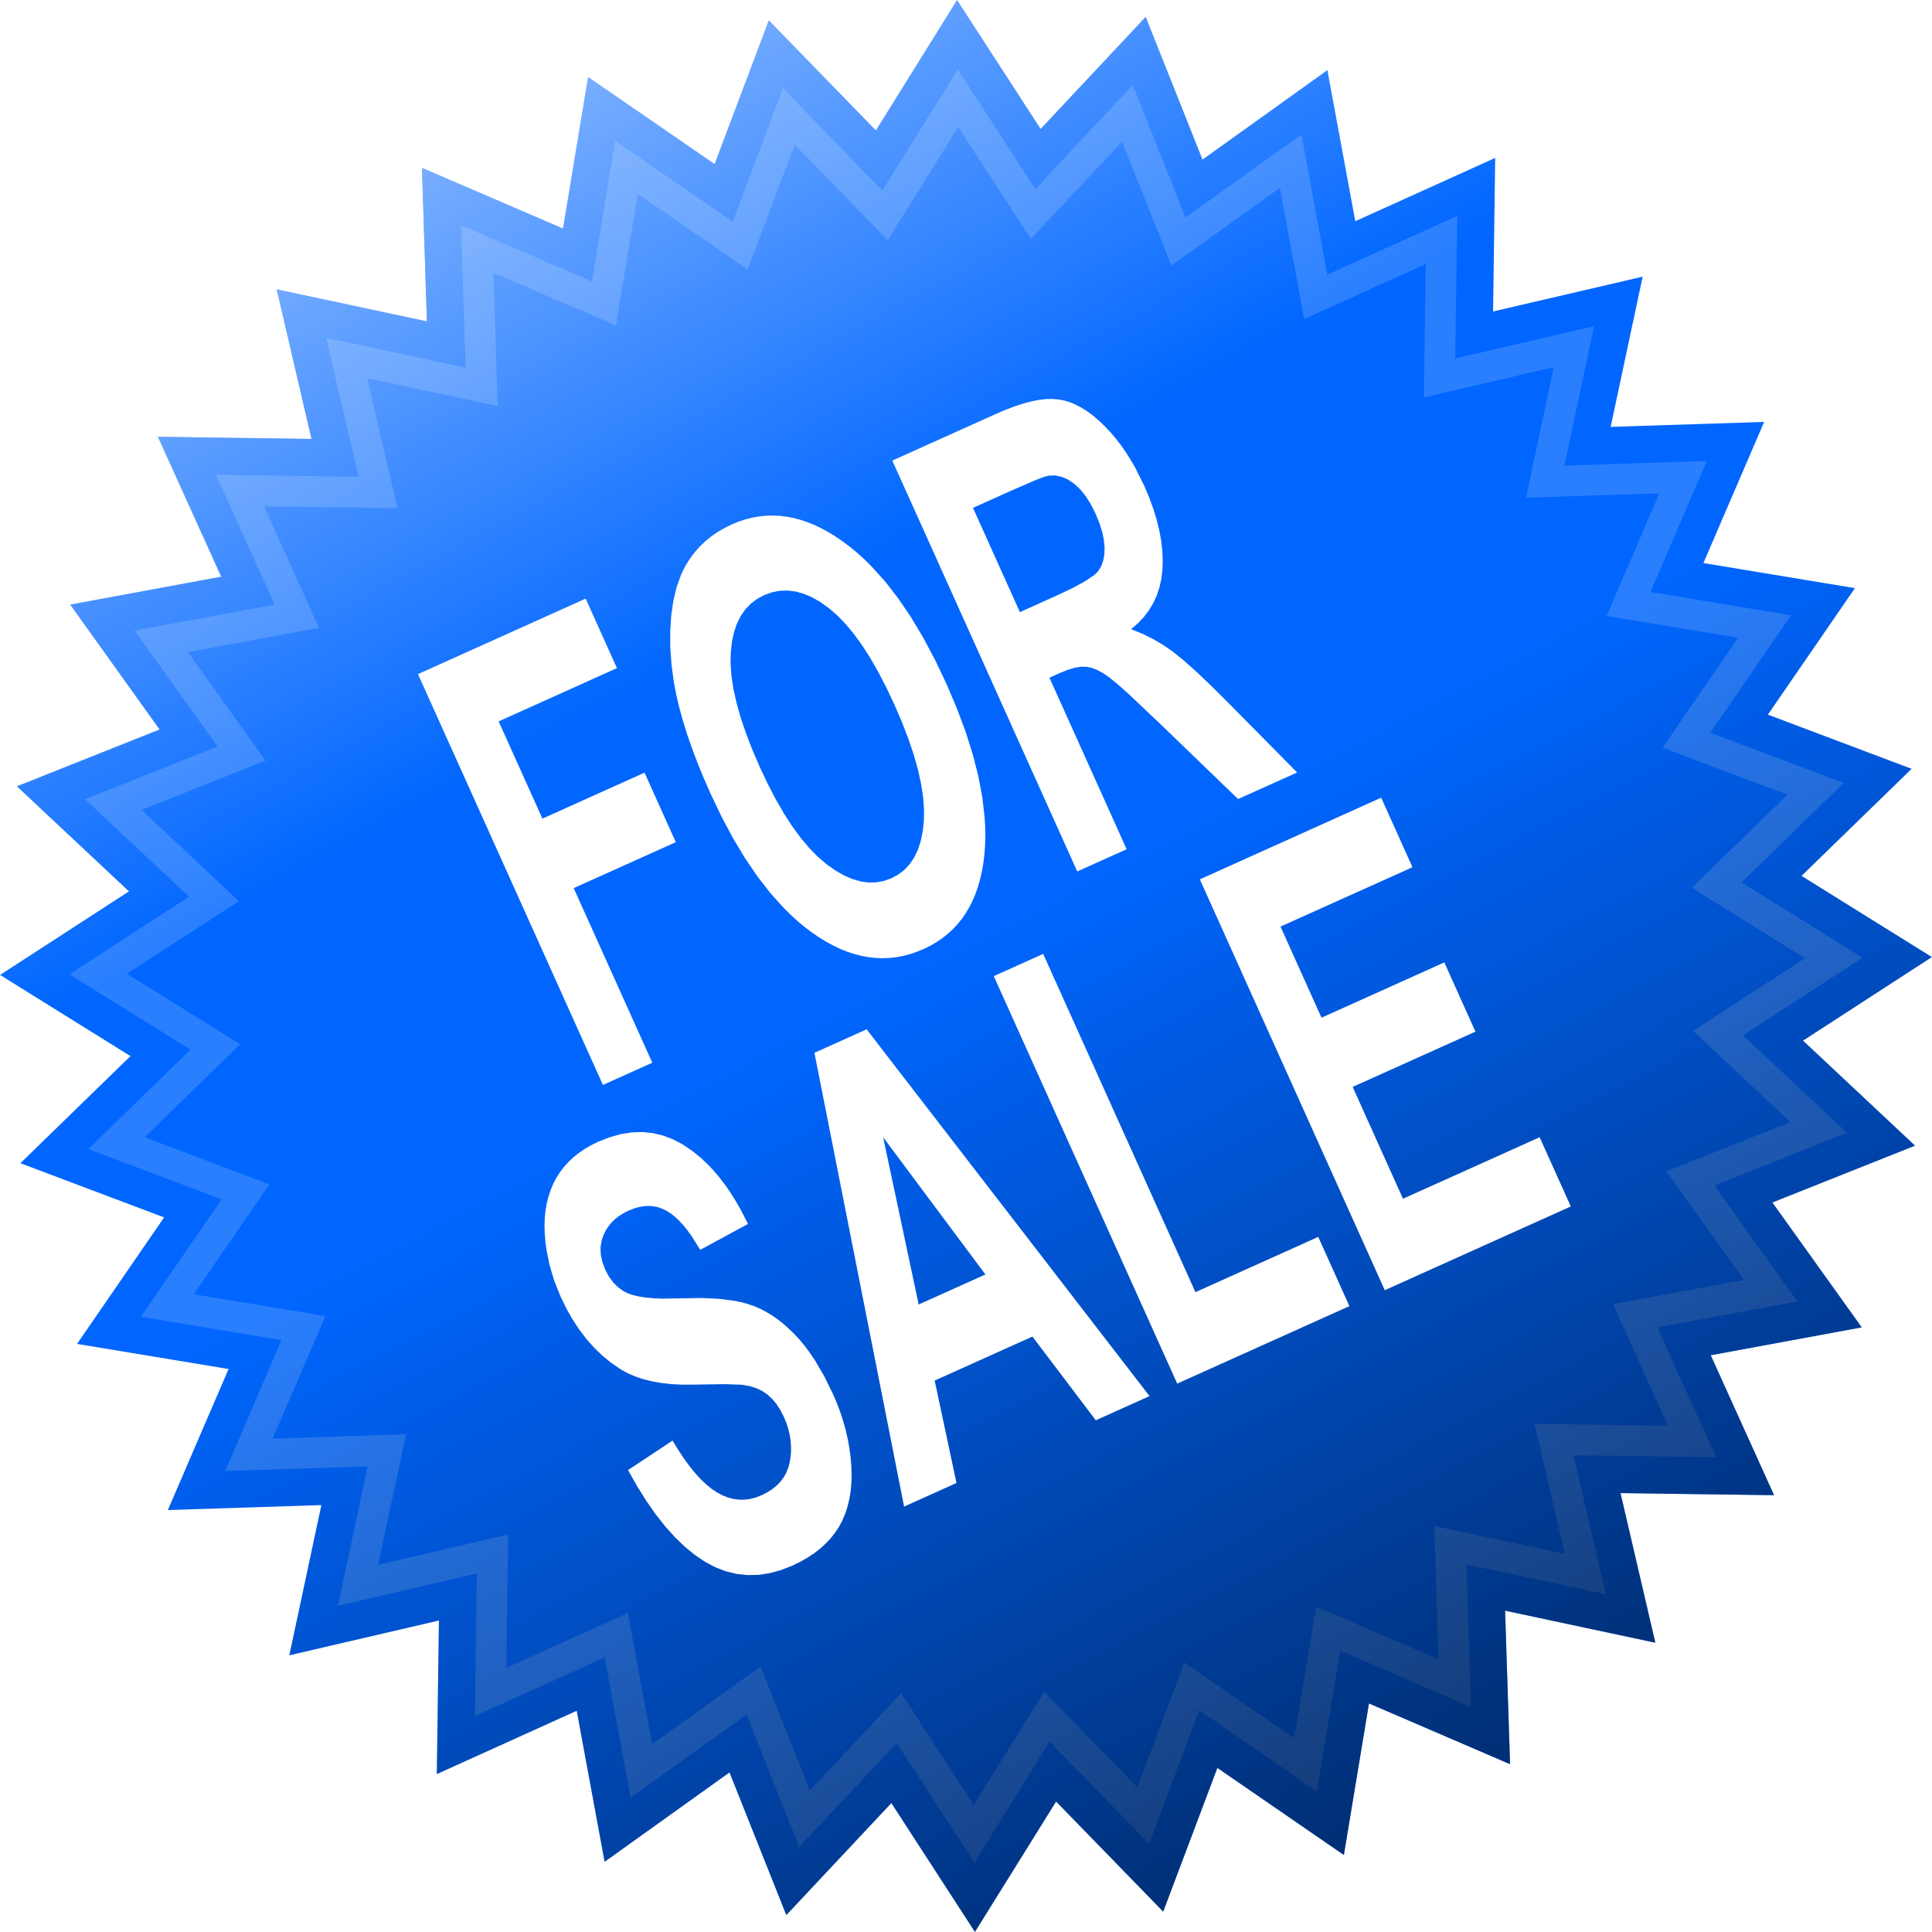 Sticker transparent. Shopping special offer stickers